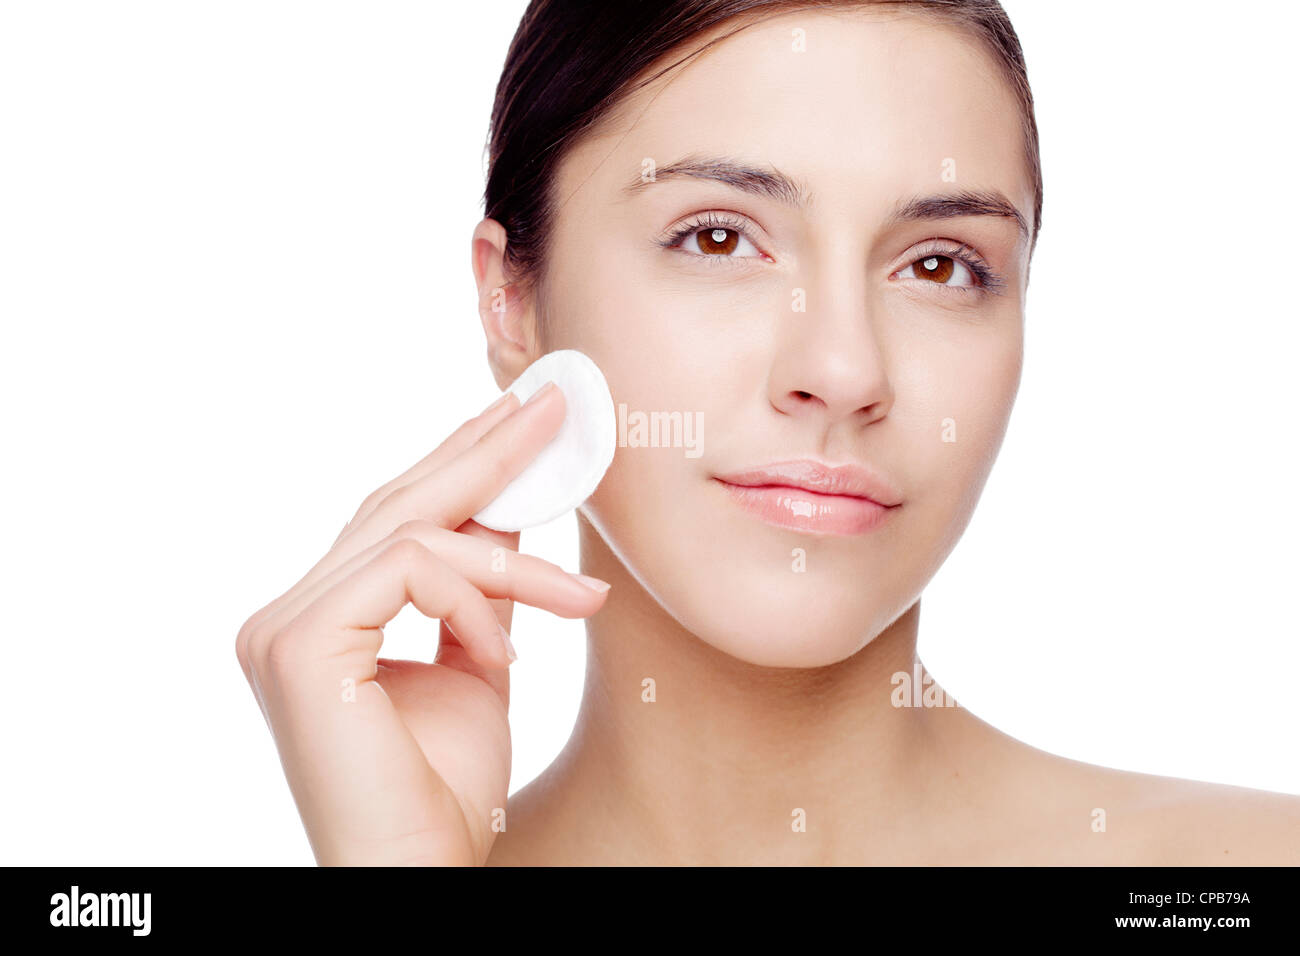 face cleaning - Stock Image